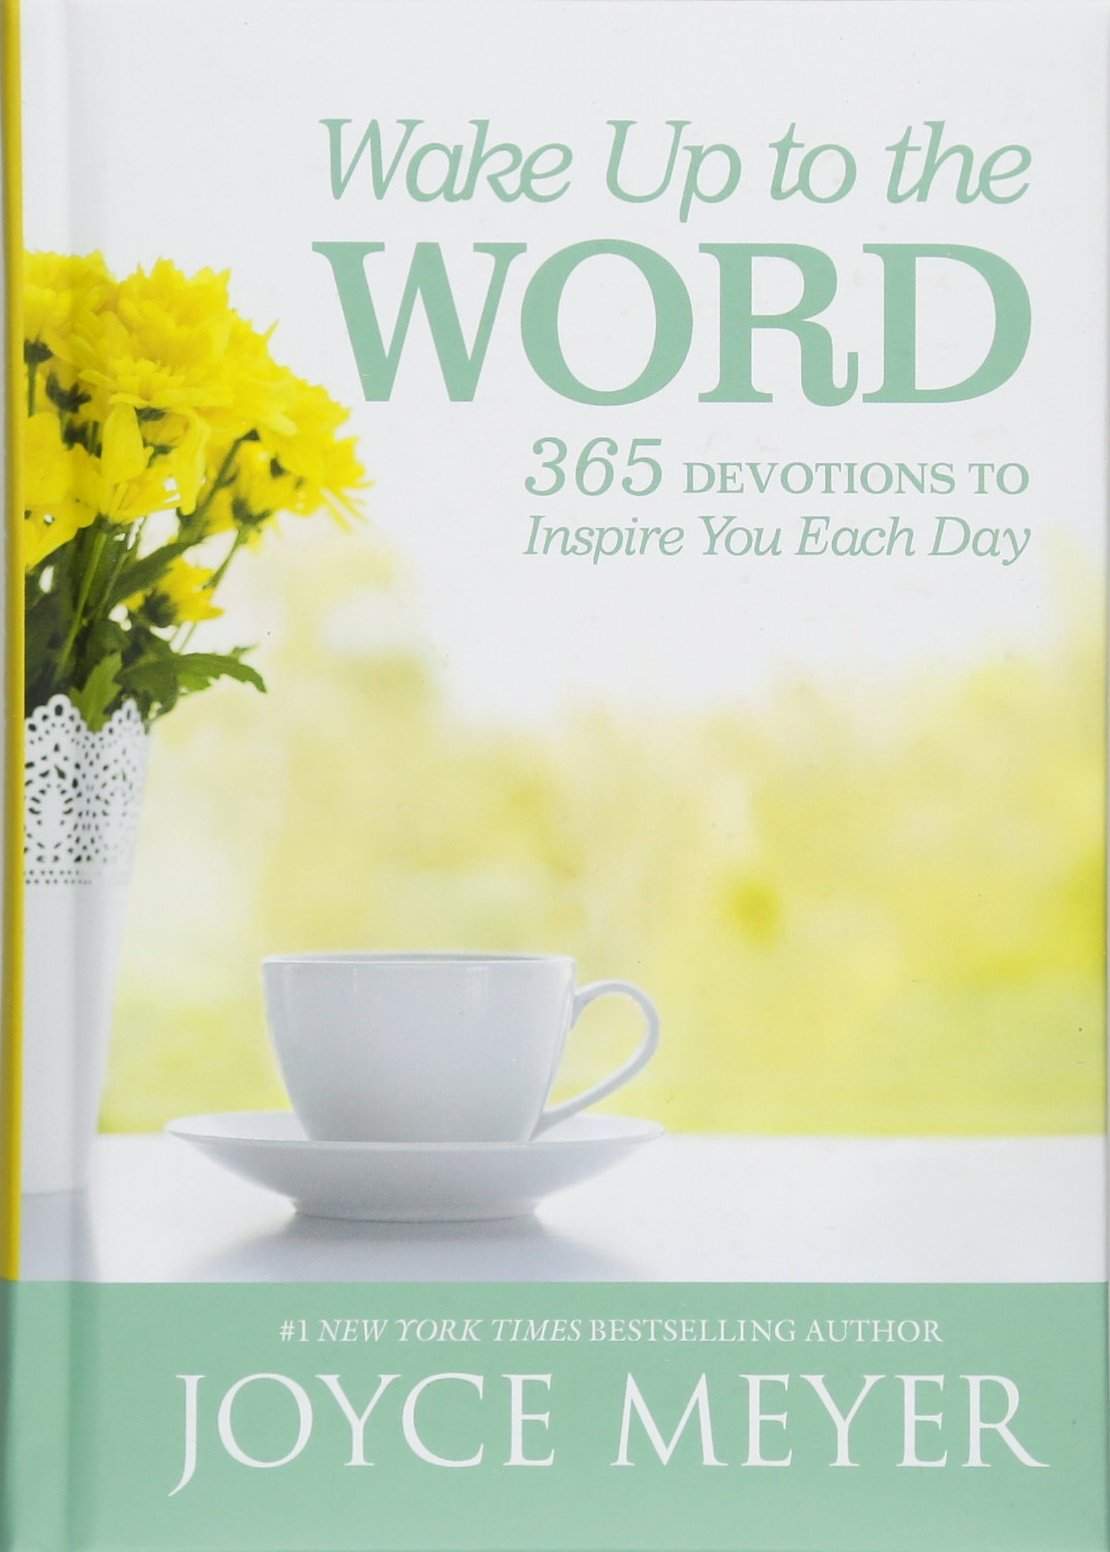 June: The Word for Today (Christian Devotional Book 6)